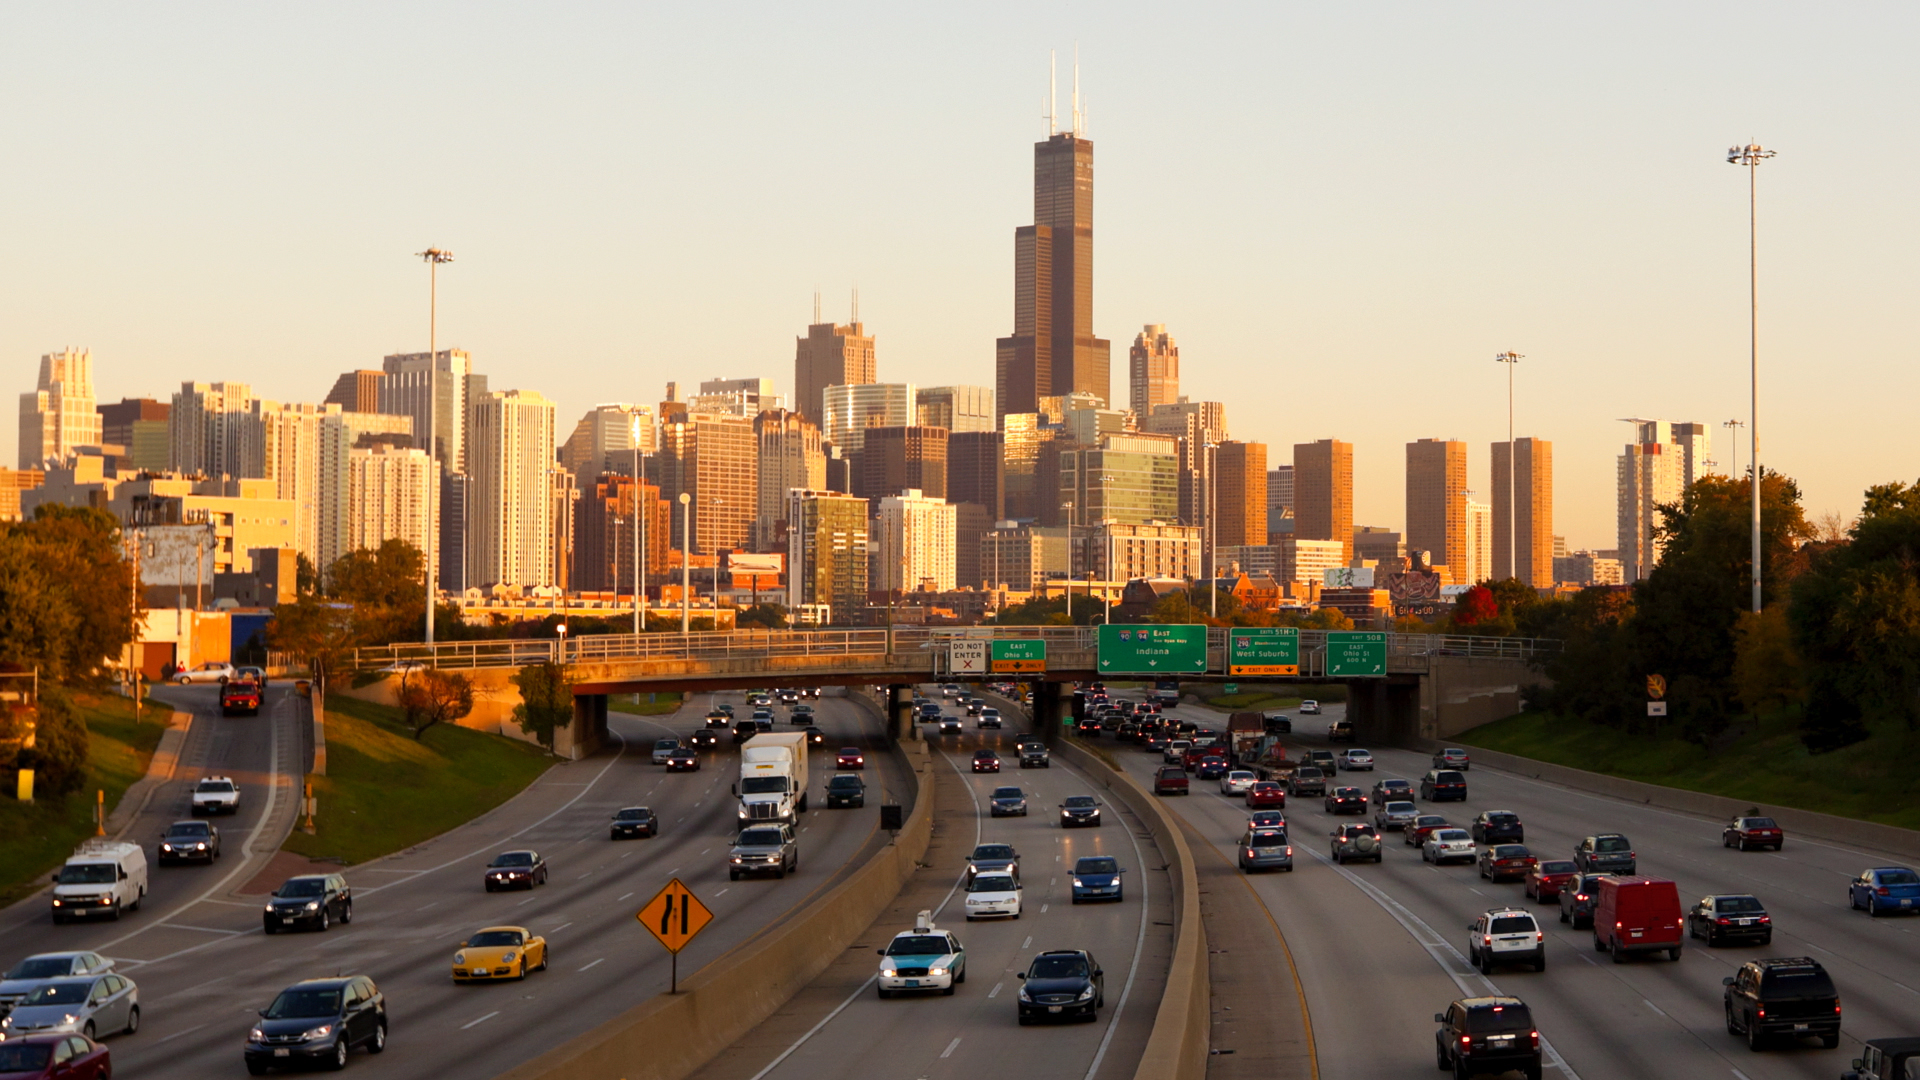 Places in Time: Chicago